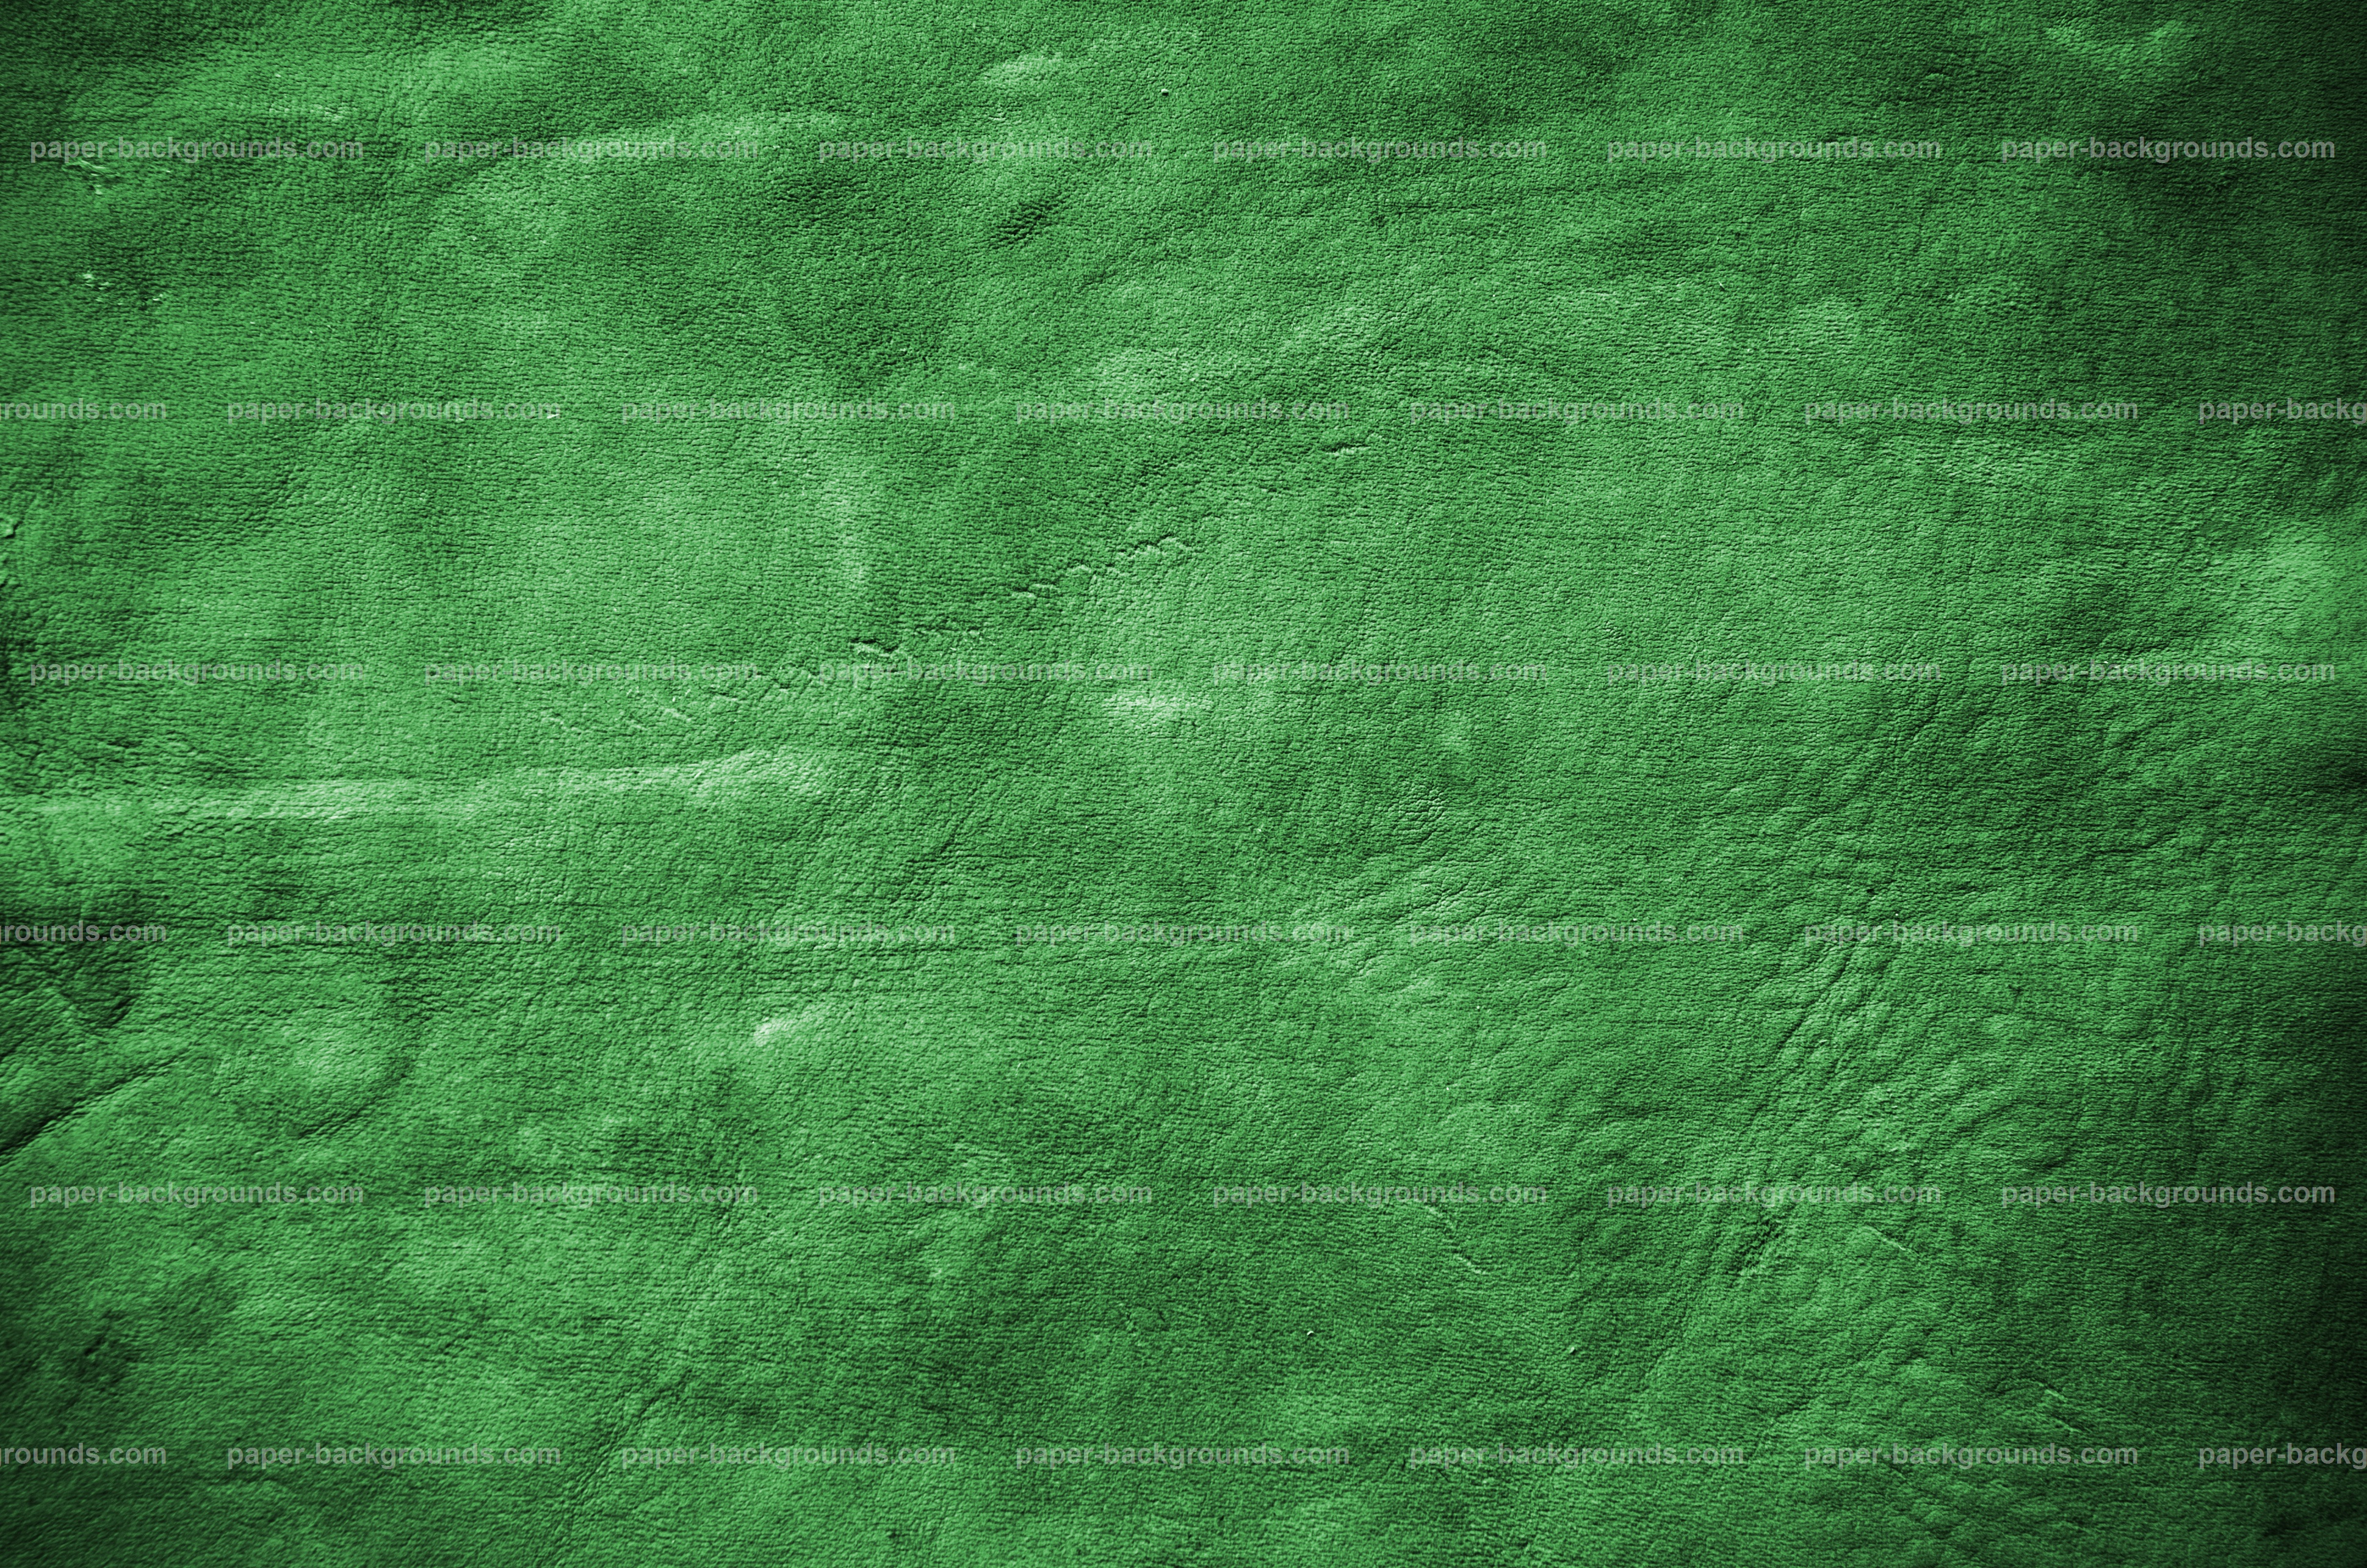 green background textures